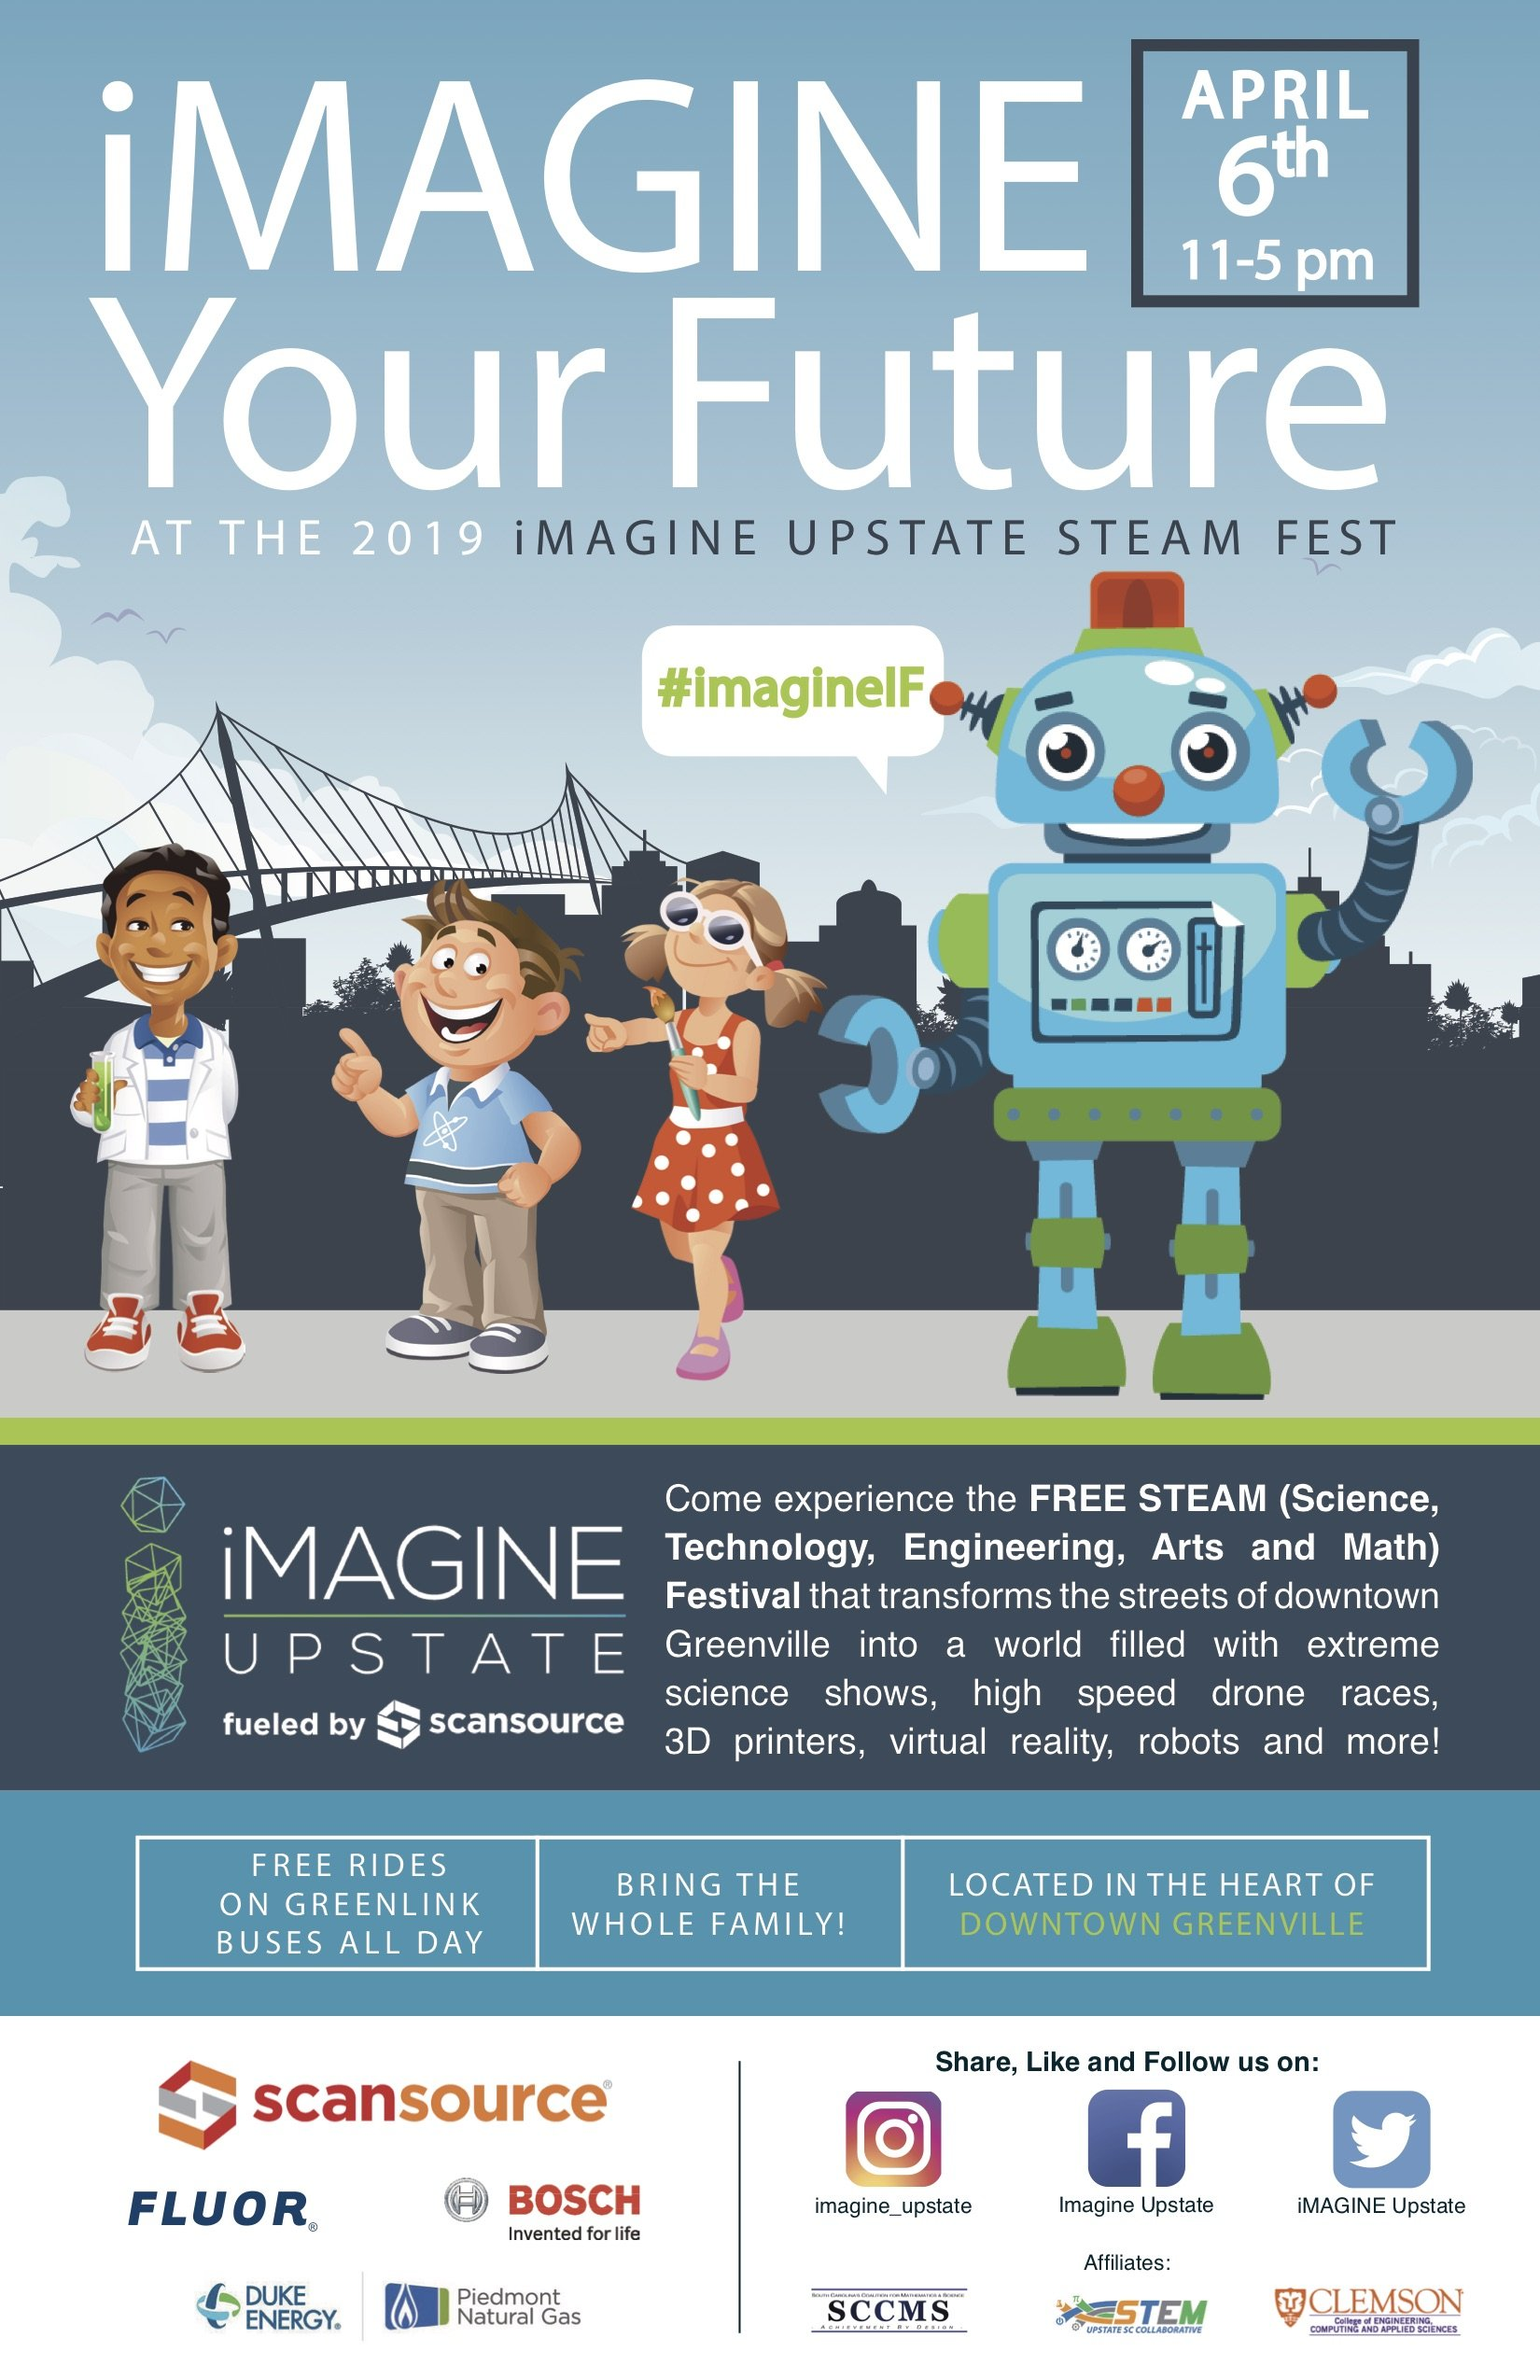 5th Annual iMAGINE Upstate STEAM Fest - Ten at the Top